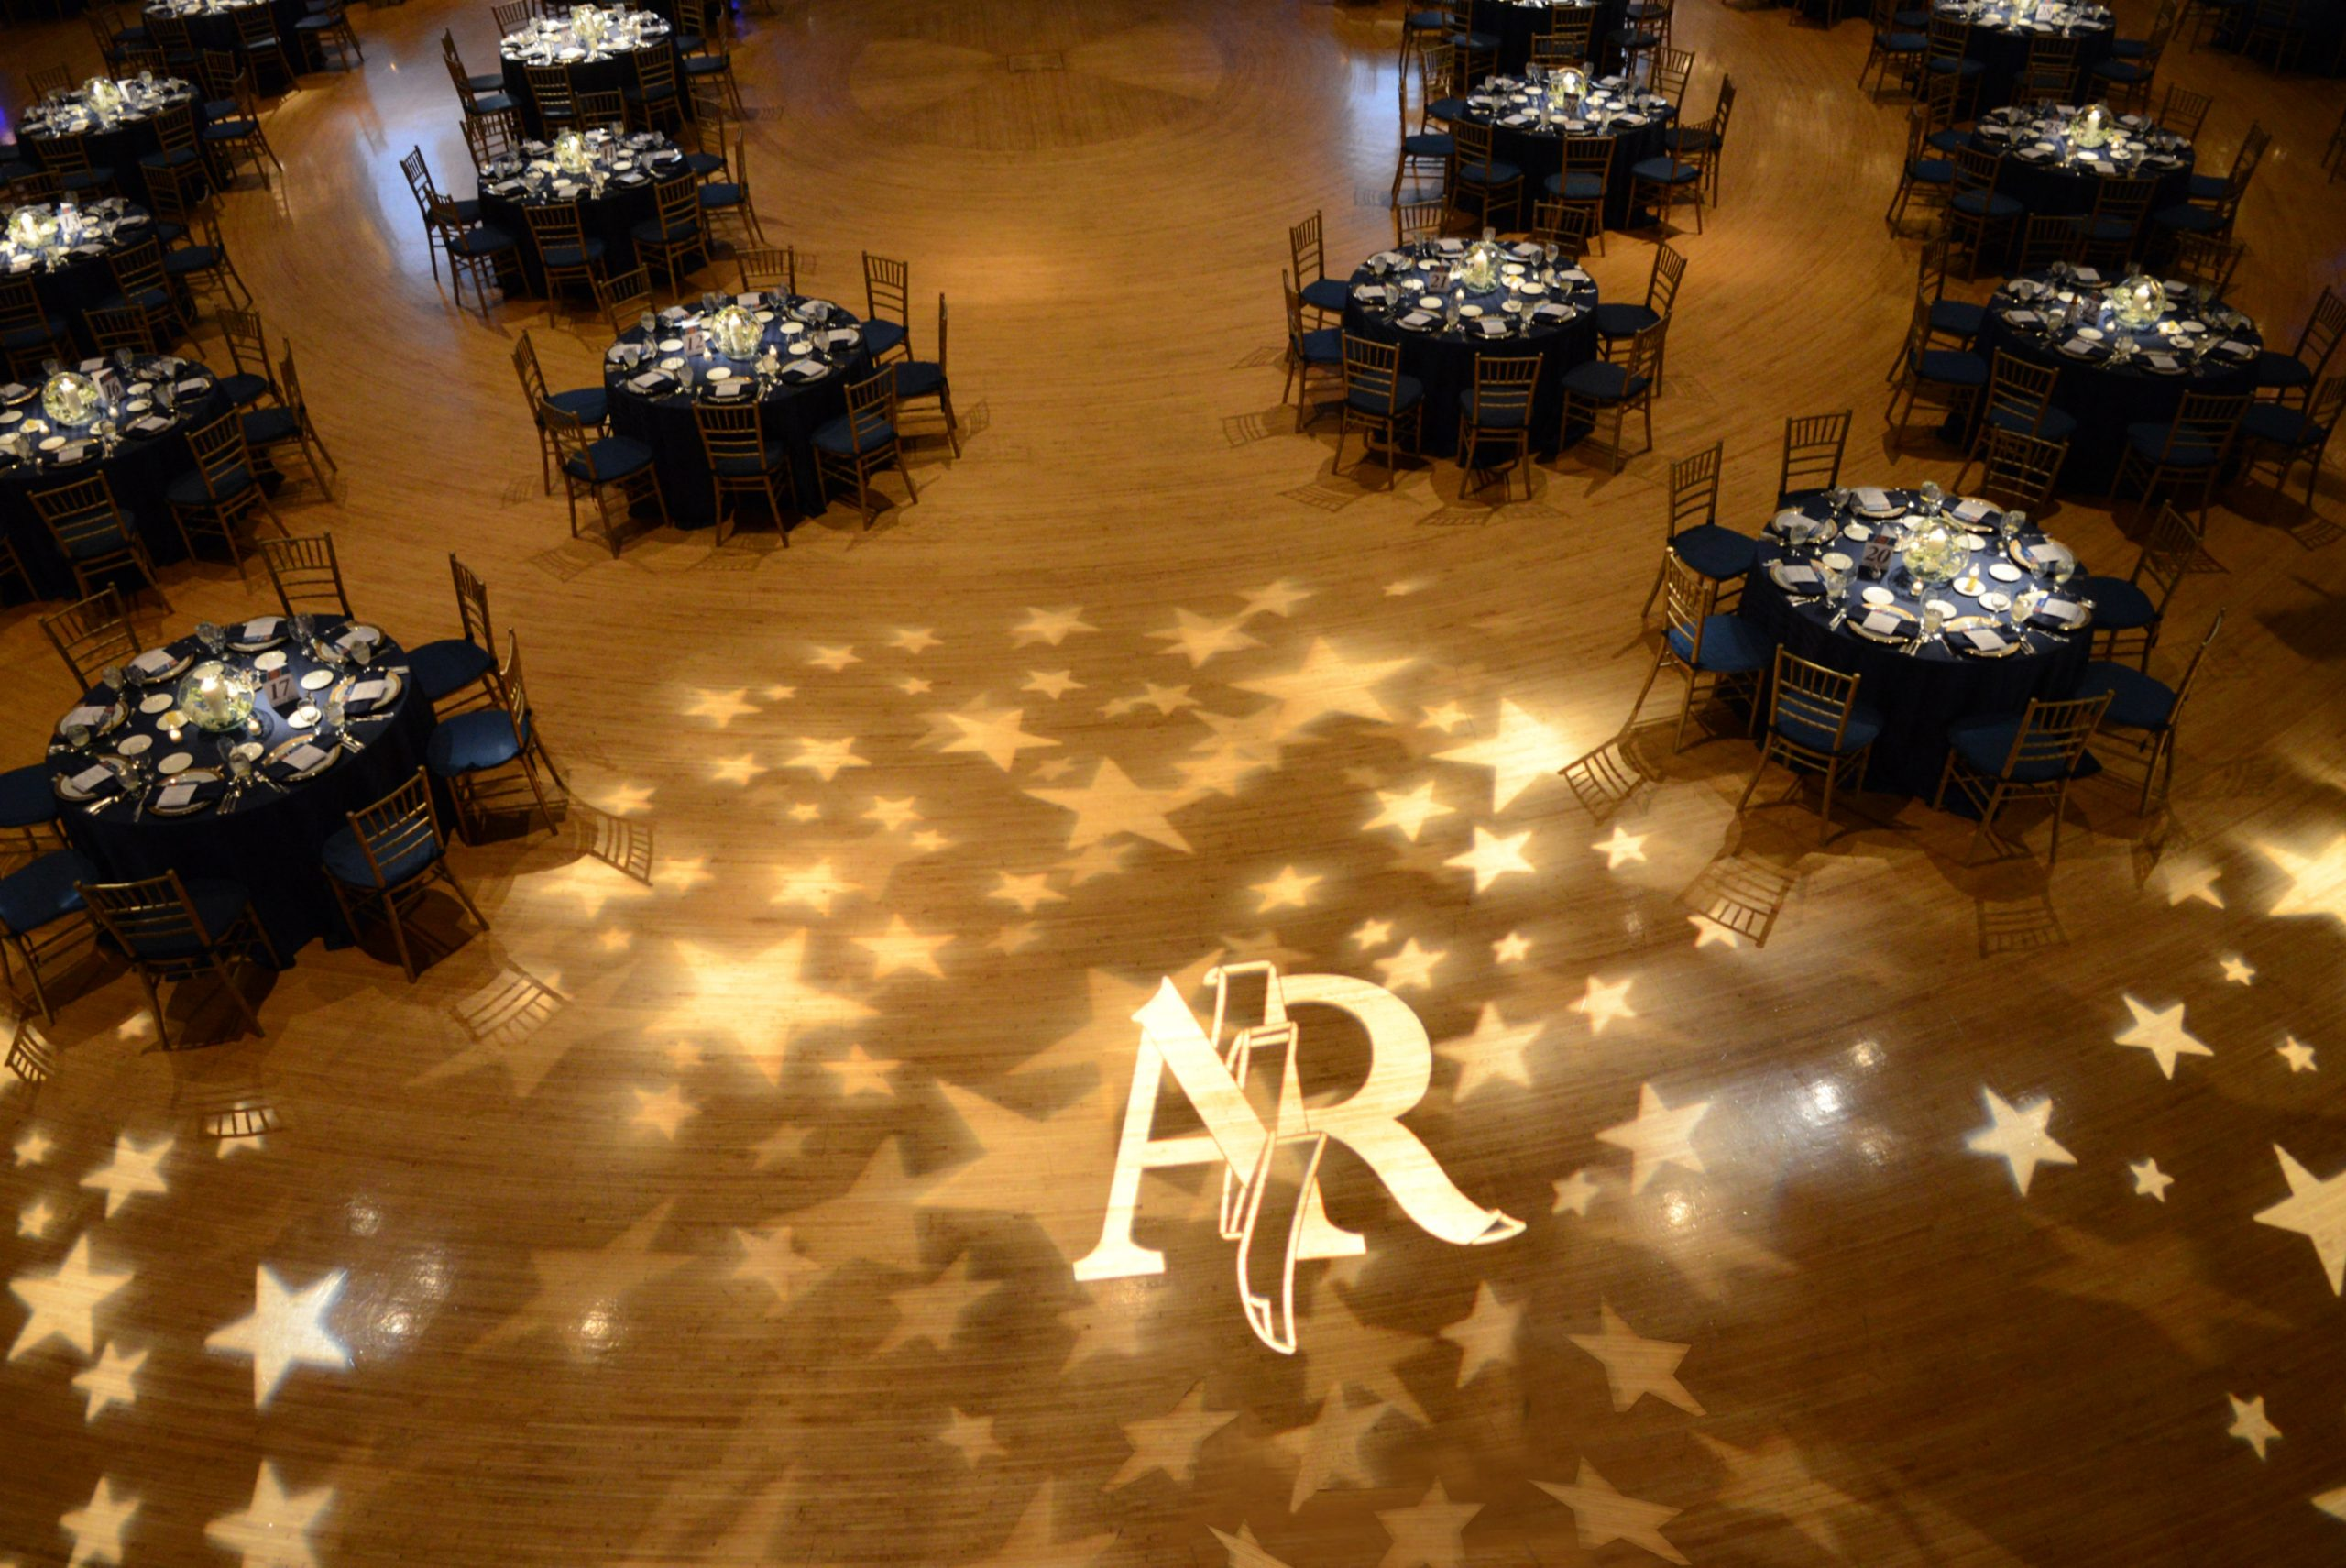 image of an empty room decorated for a 50th anniversary